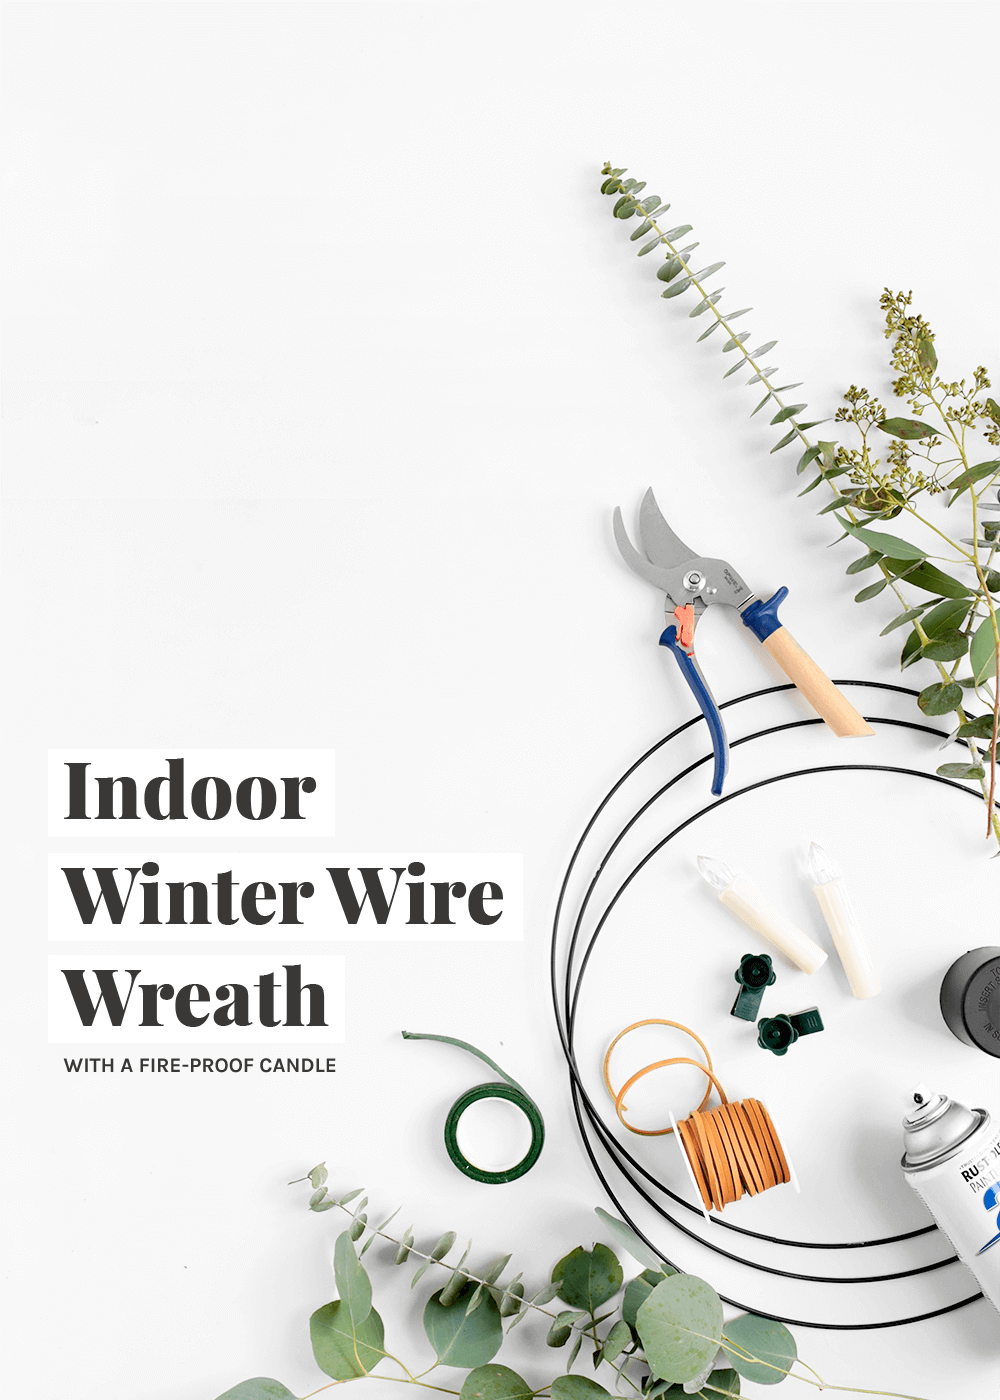 Indoor Winter Wire Wreath with fire proof candle from The Faux Martha